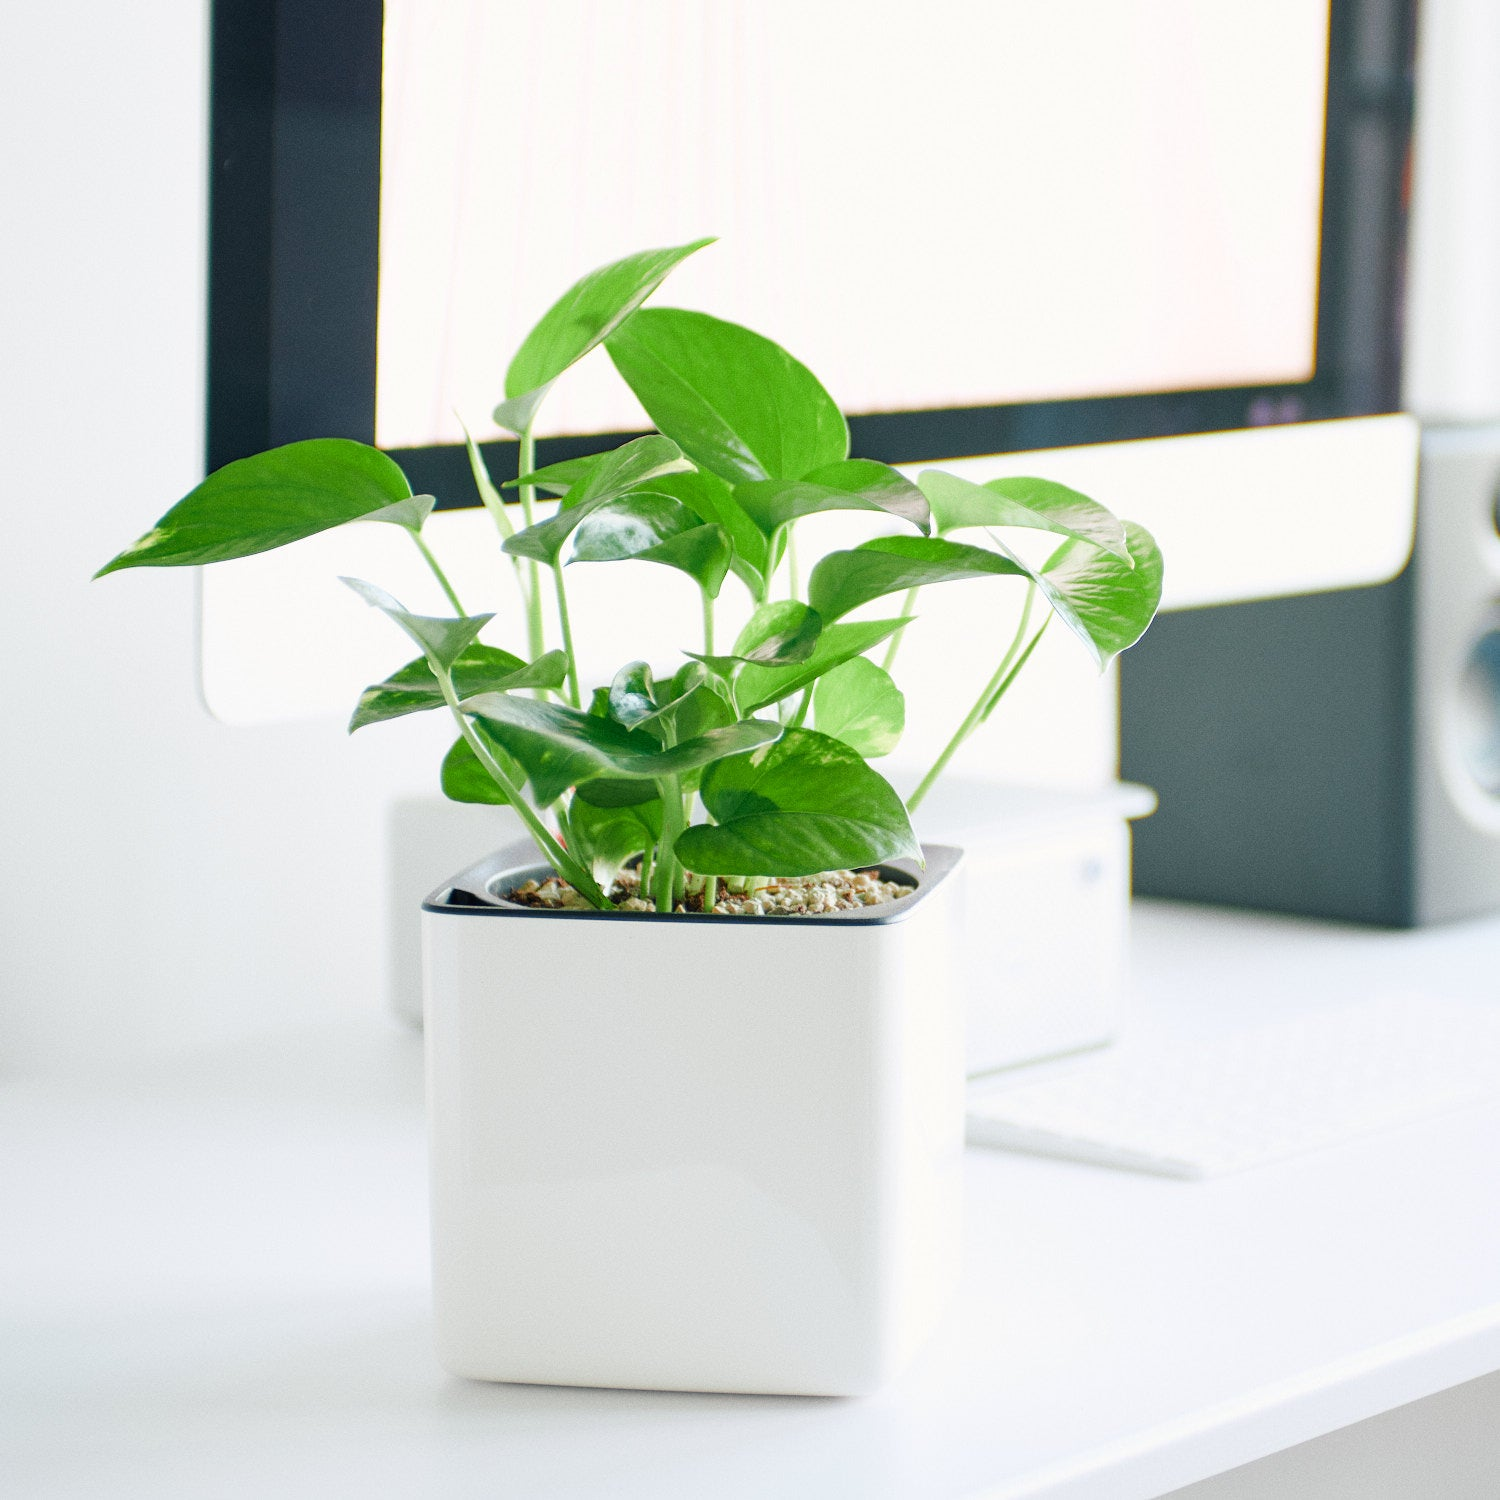 Pothos In Lechuza Cube 14 Glossy White Planter | My City Plants